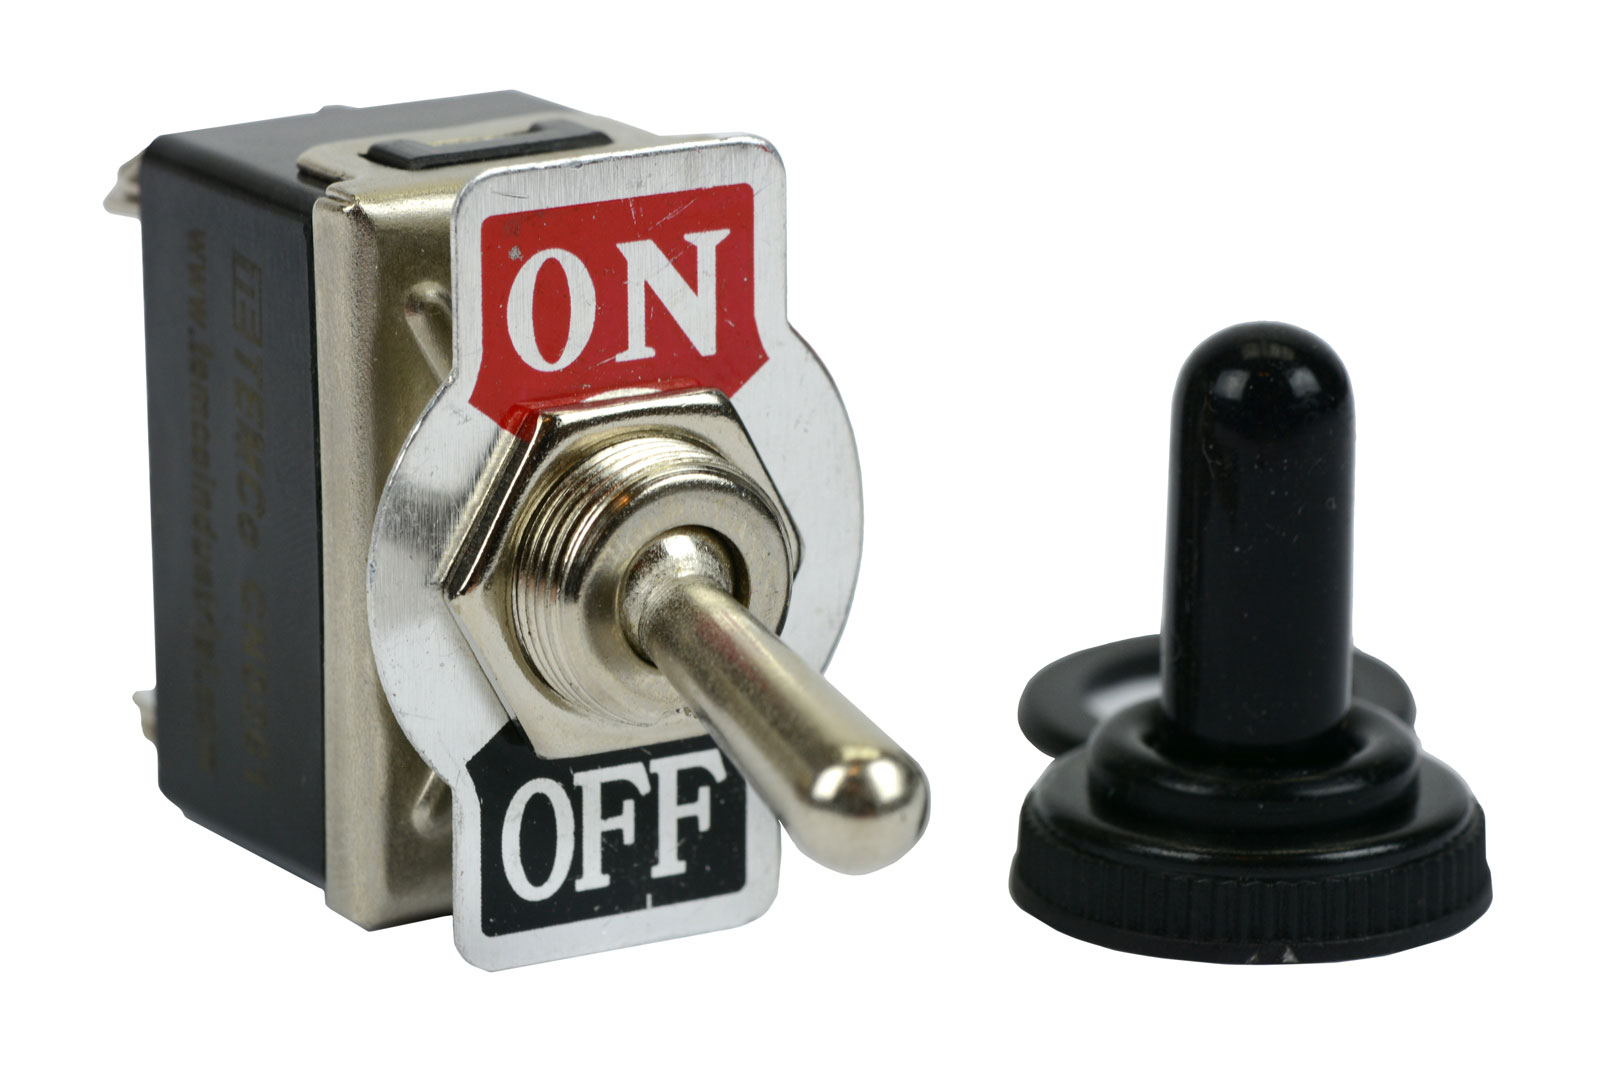 temco 20a 125v on off dpst 4 terminal toggle switch w. Black Bedroom Furniture Sets. Home Design Ideas